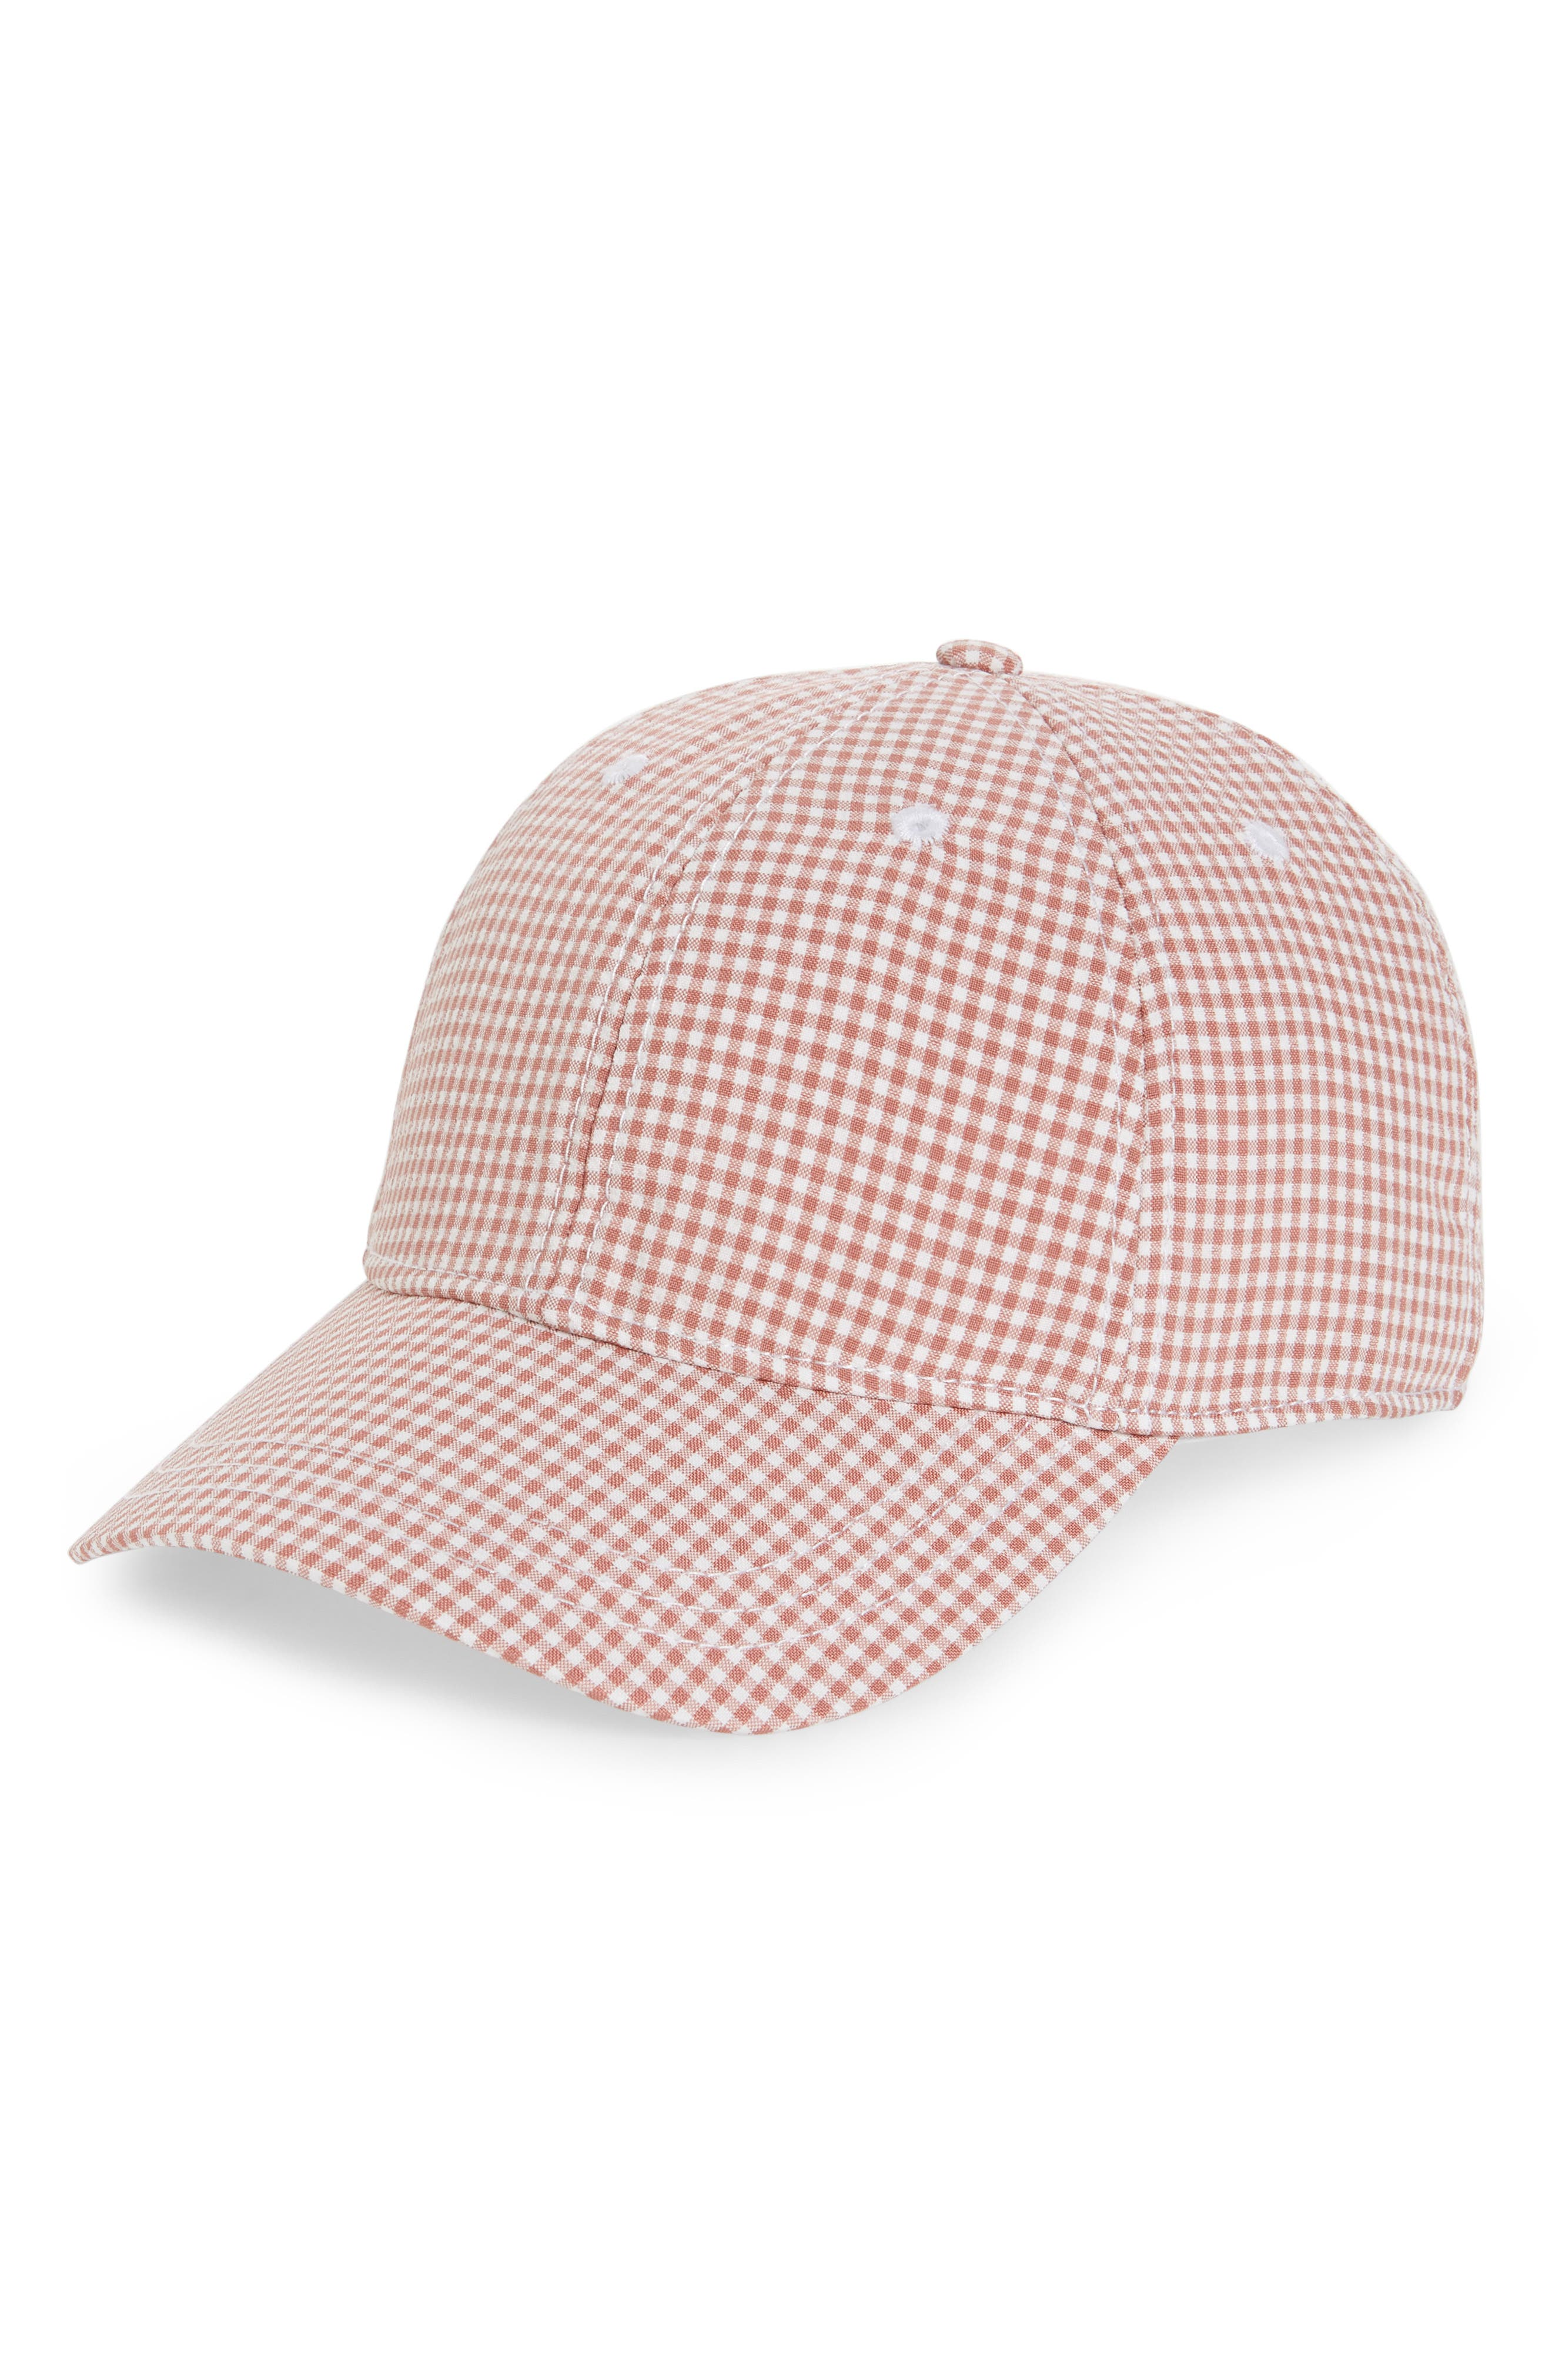 21bc18dd0a1 Madewell Hats for Women